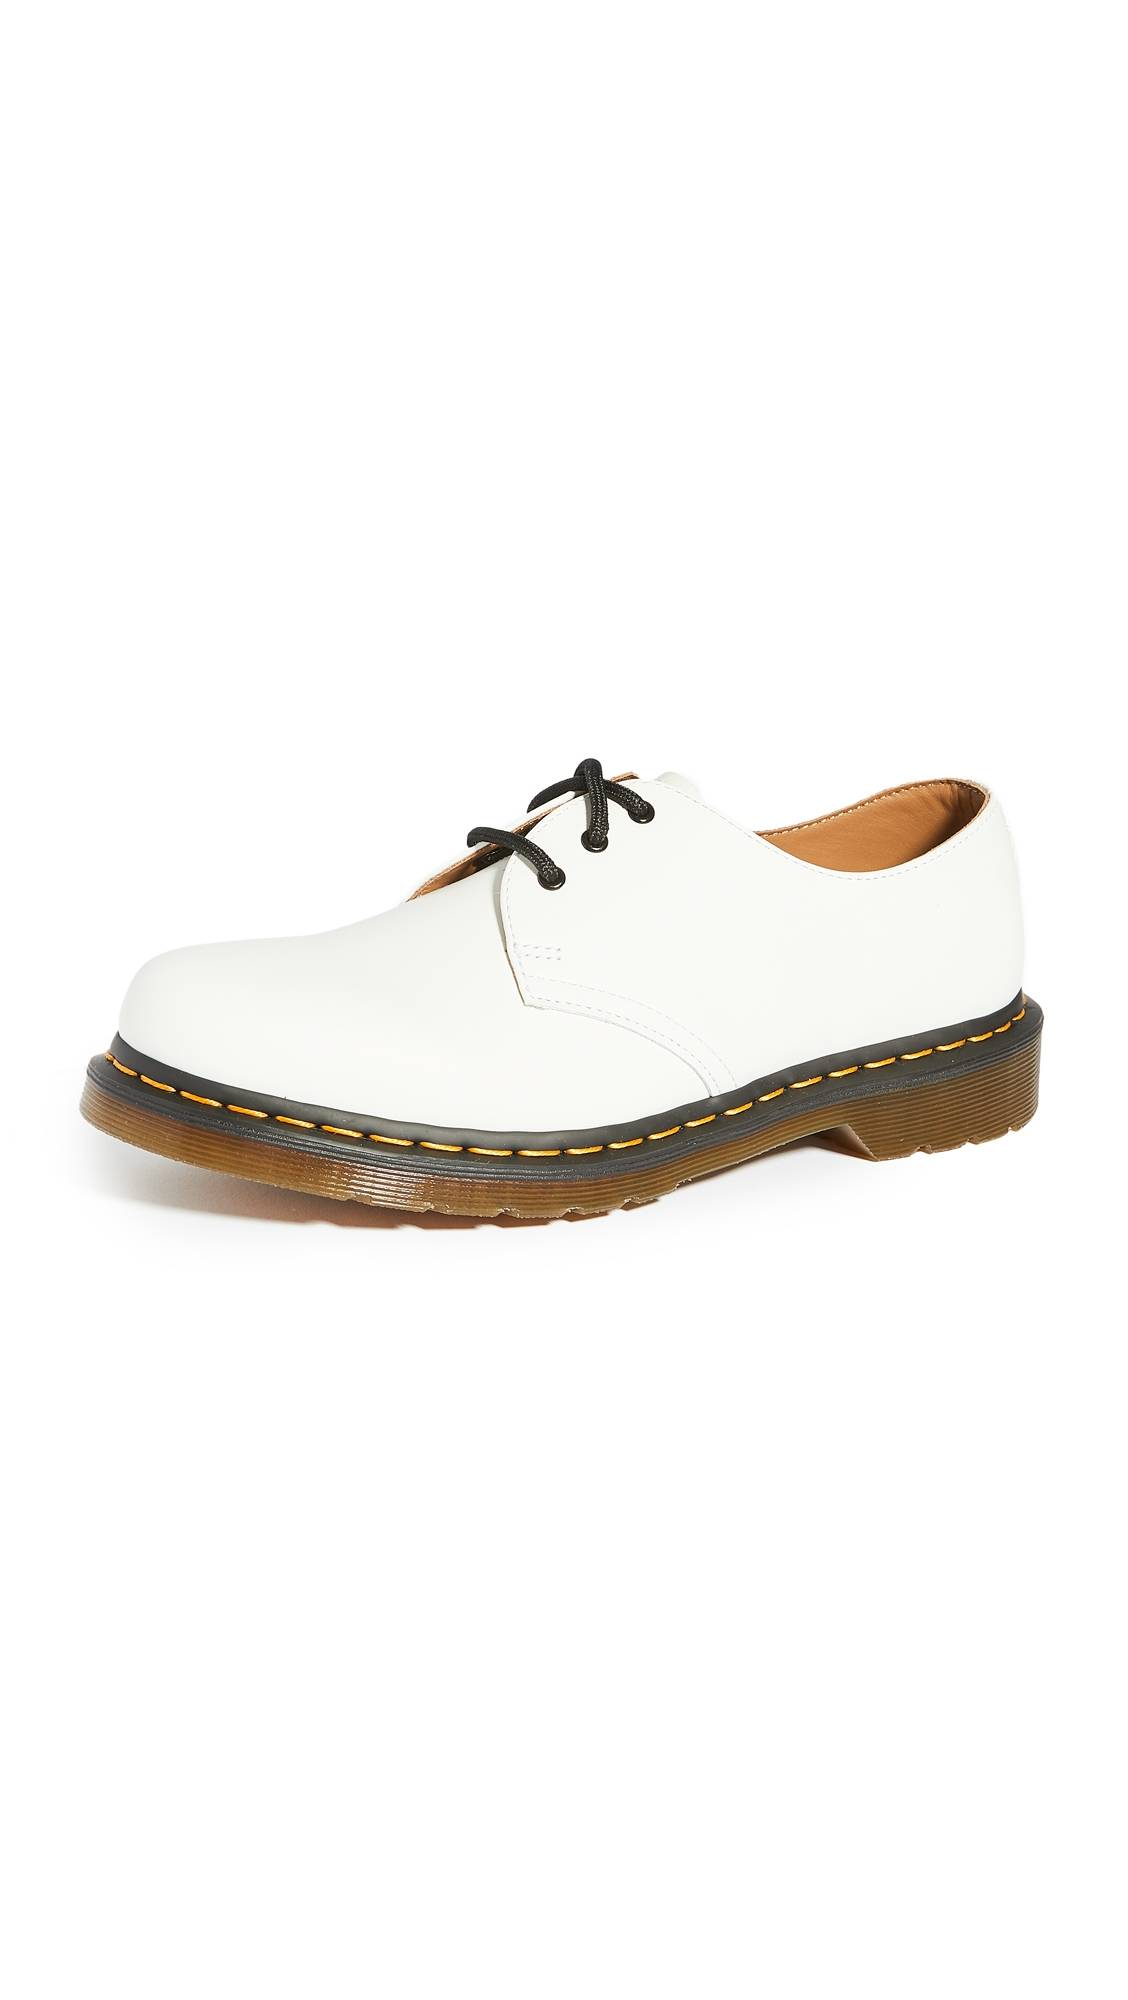 Dr. Martens 1461 3-Eye Shoes - White - Size: 9